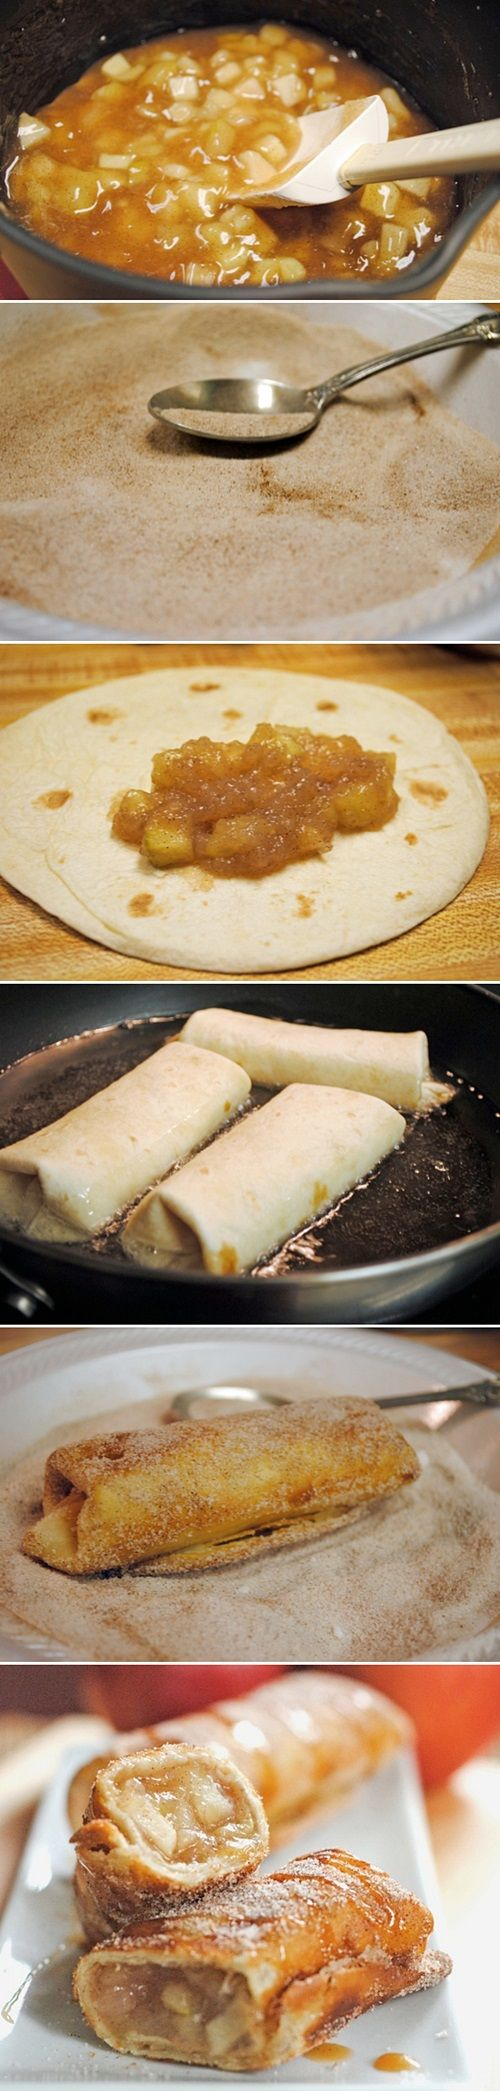 Such a great idea to use tortilla ! They look fabulous. I have all the ingredients at home today & lots of apples to use ! Going to make this:D This image is meant to be a source of inspiration...